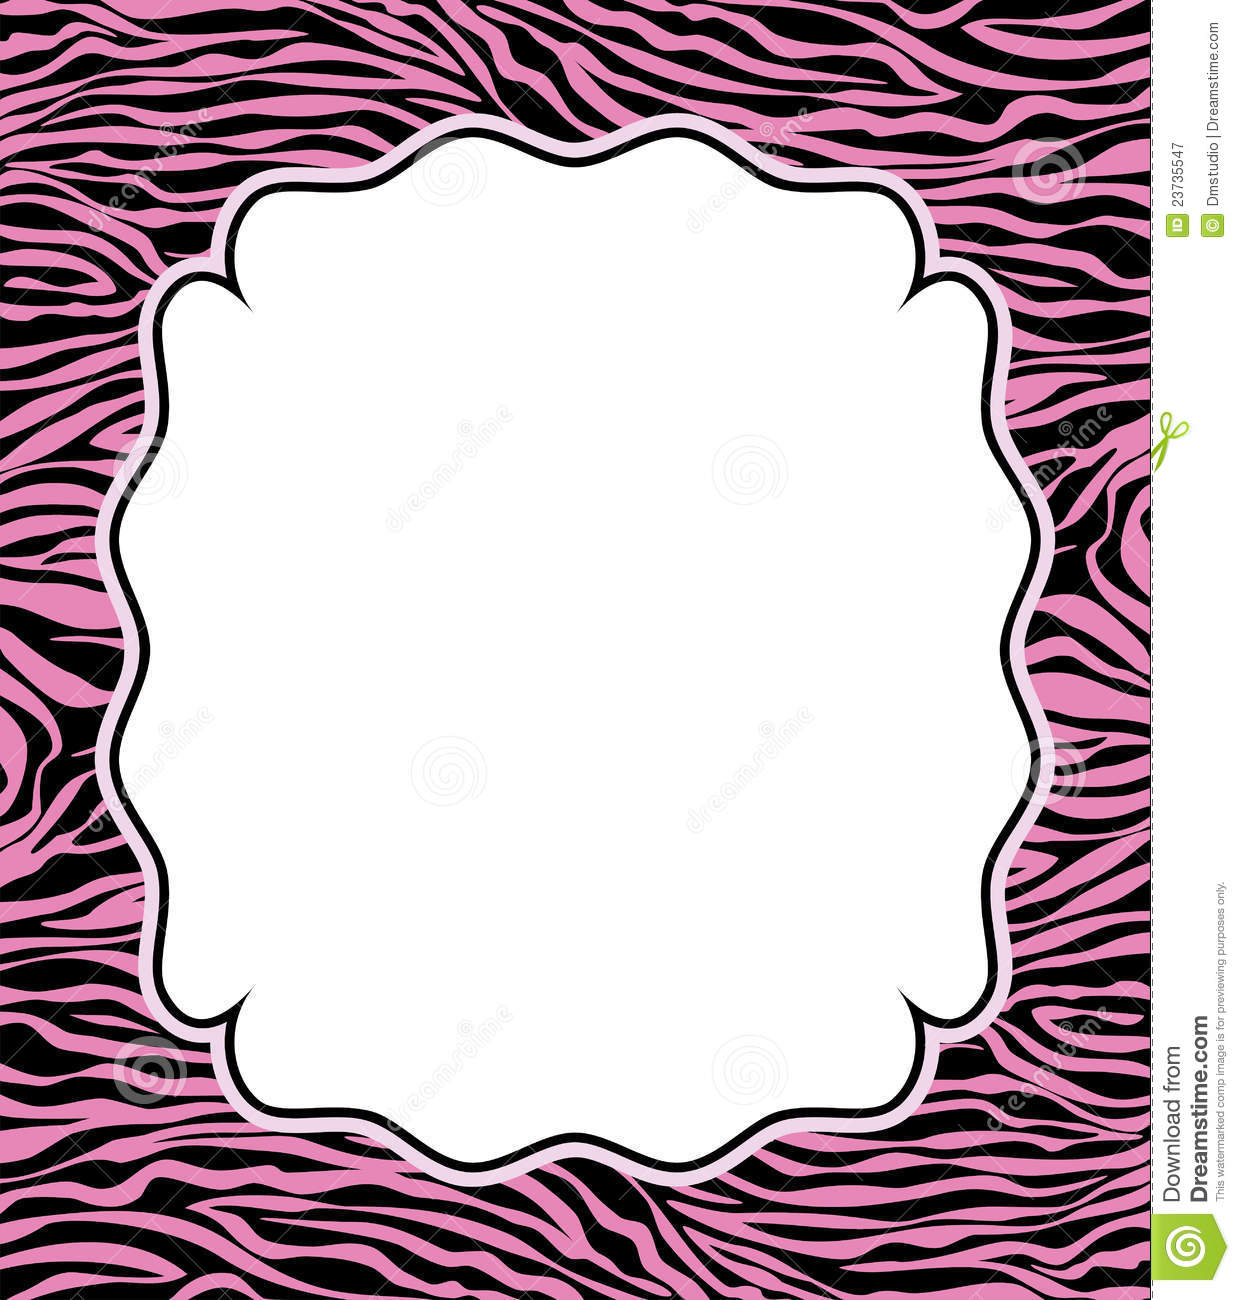 vector frame with abstract zebra skin texture royalty free